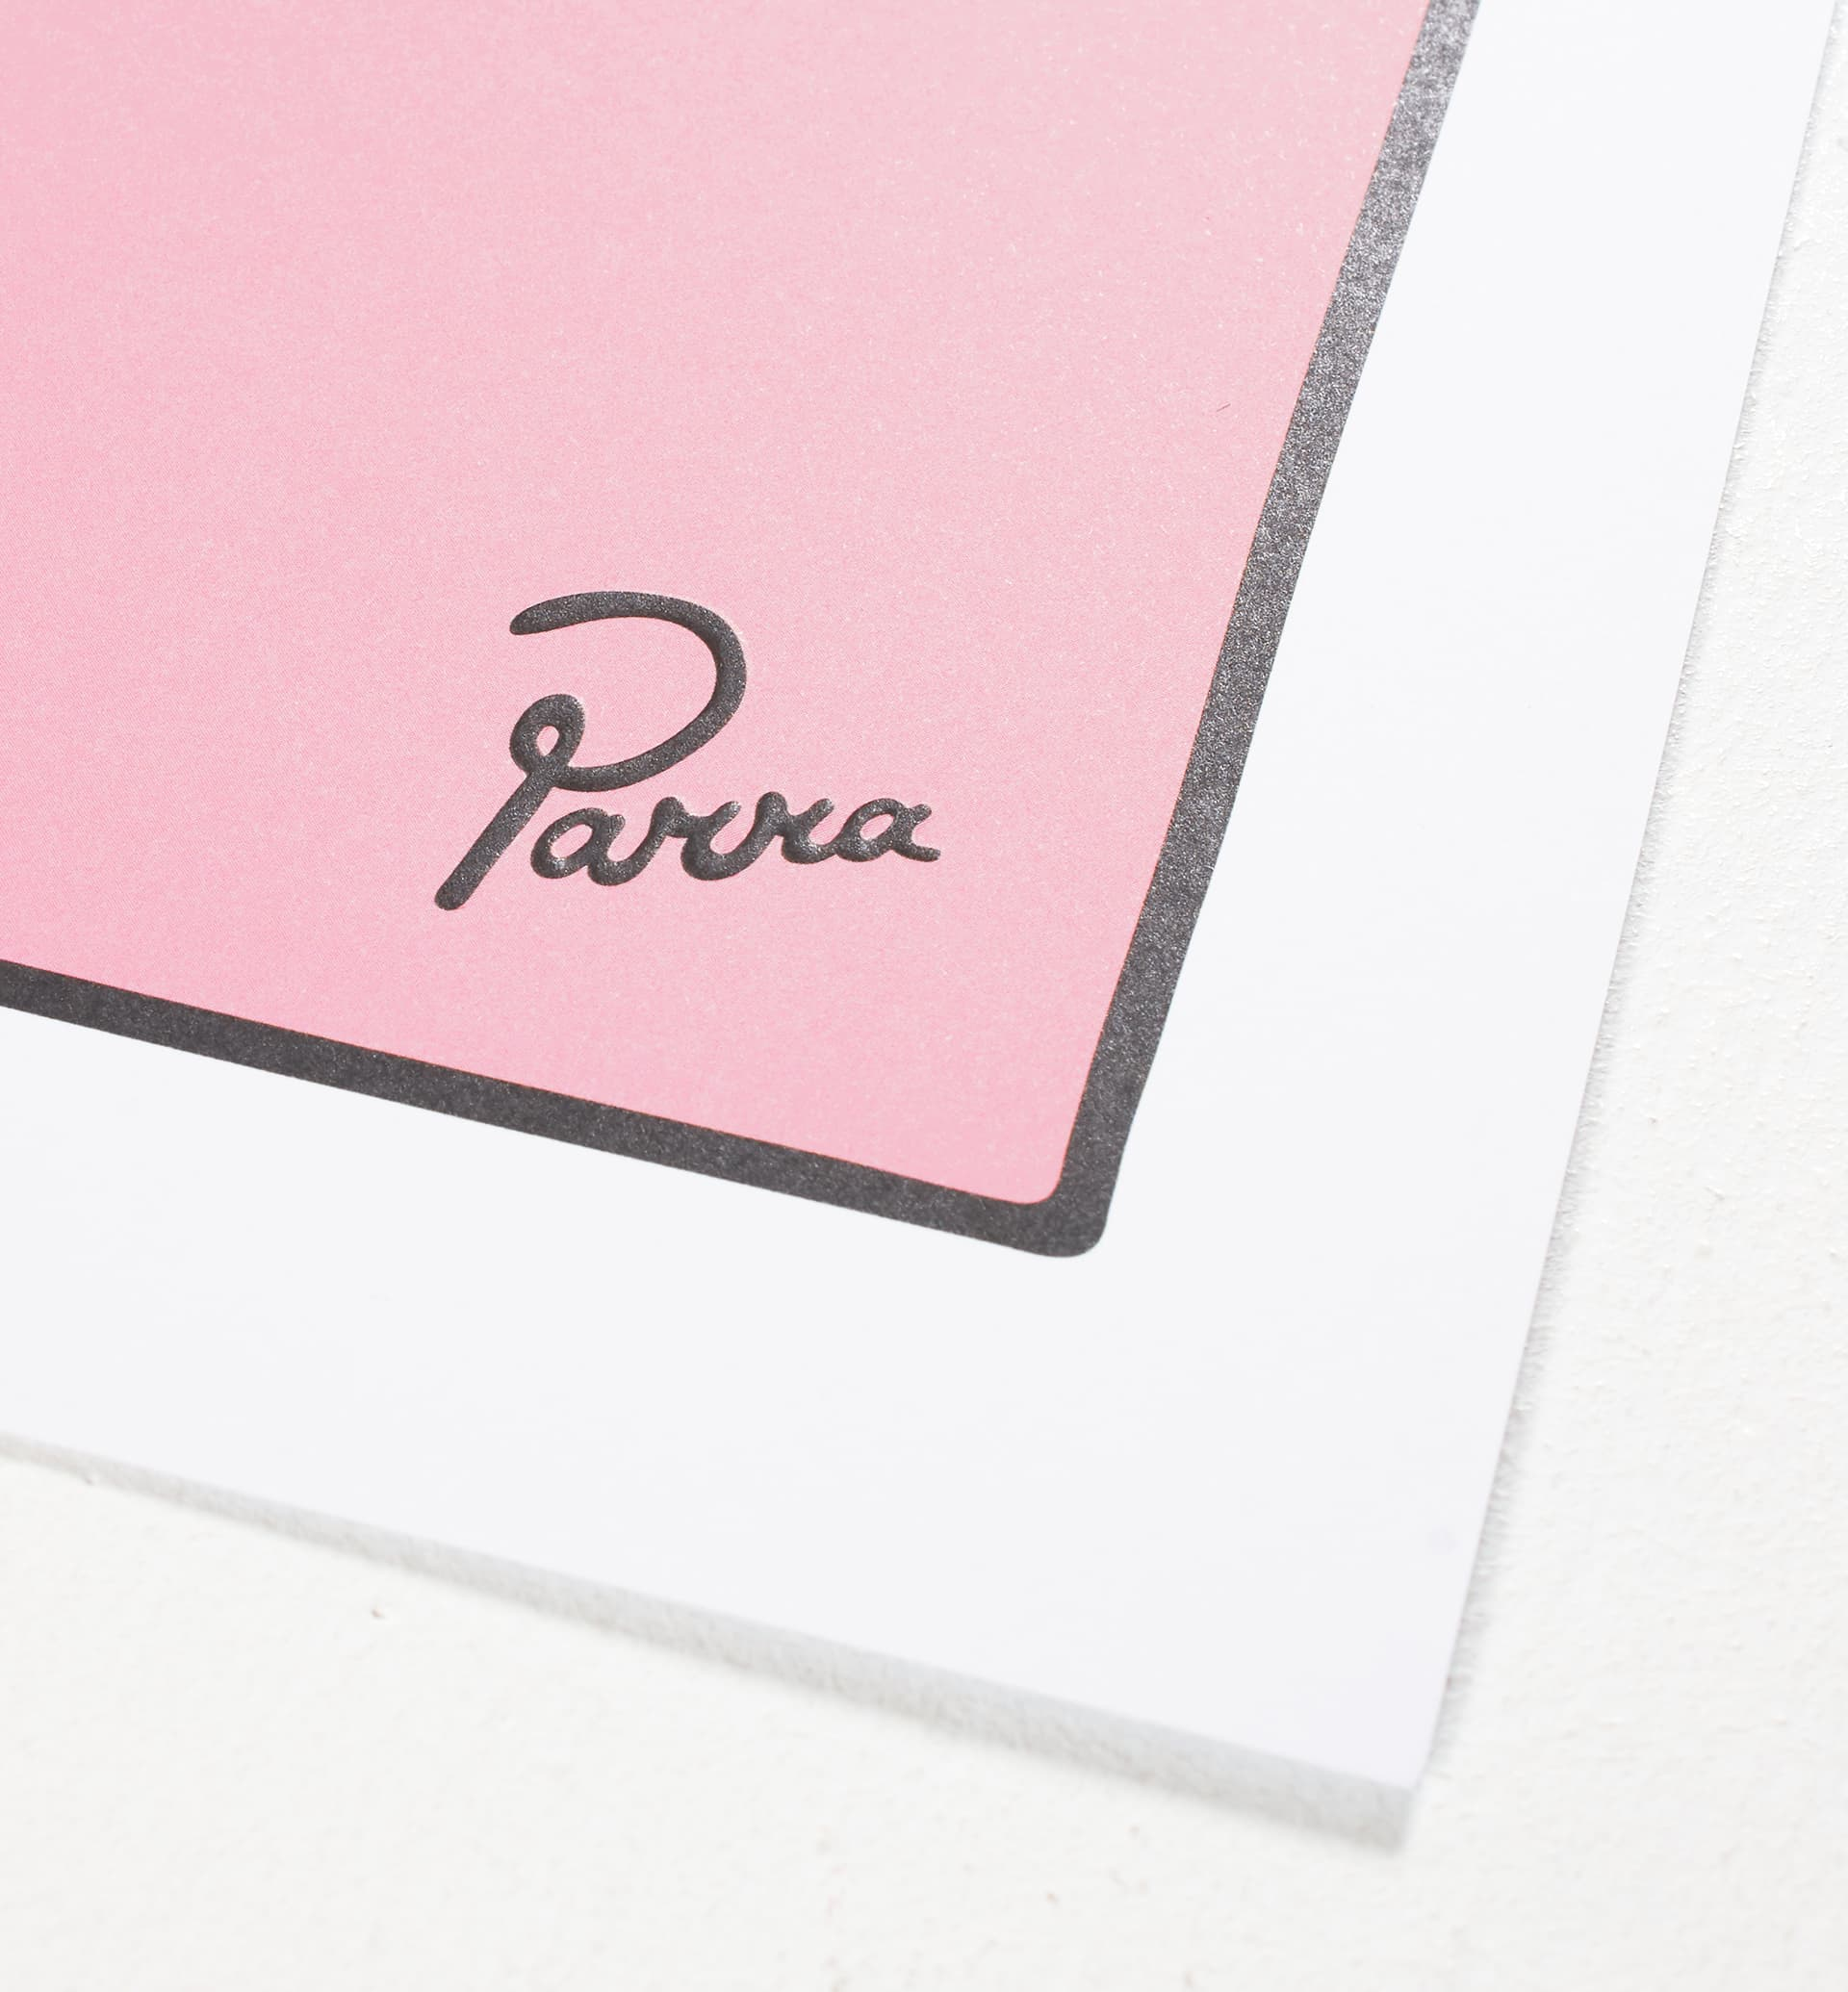 Parra - running down that hill poster